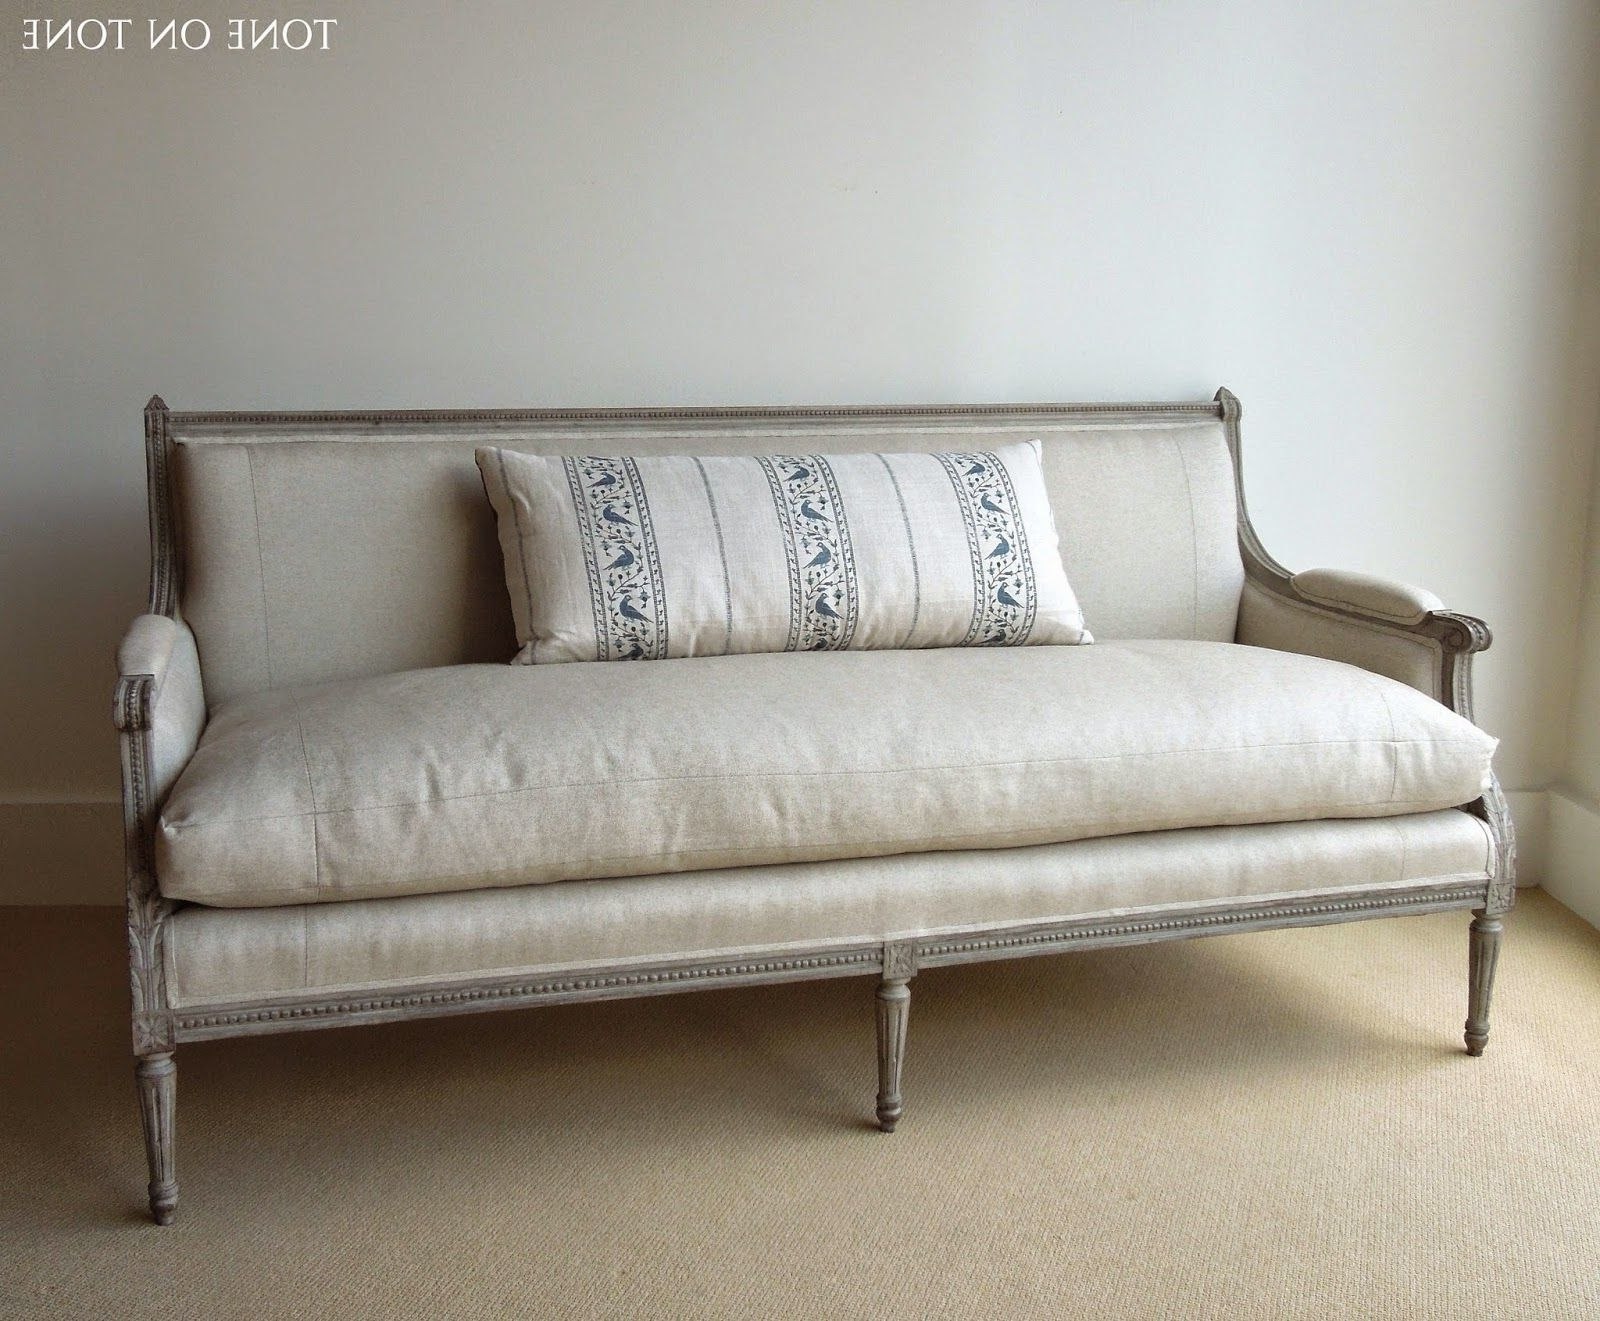 Well Liked Sofa : West Elm Blake Down Filled Sofa Reviews Down Filled Sofa In Down Filled Sofas (View 15 of 15)